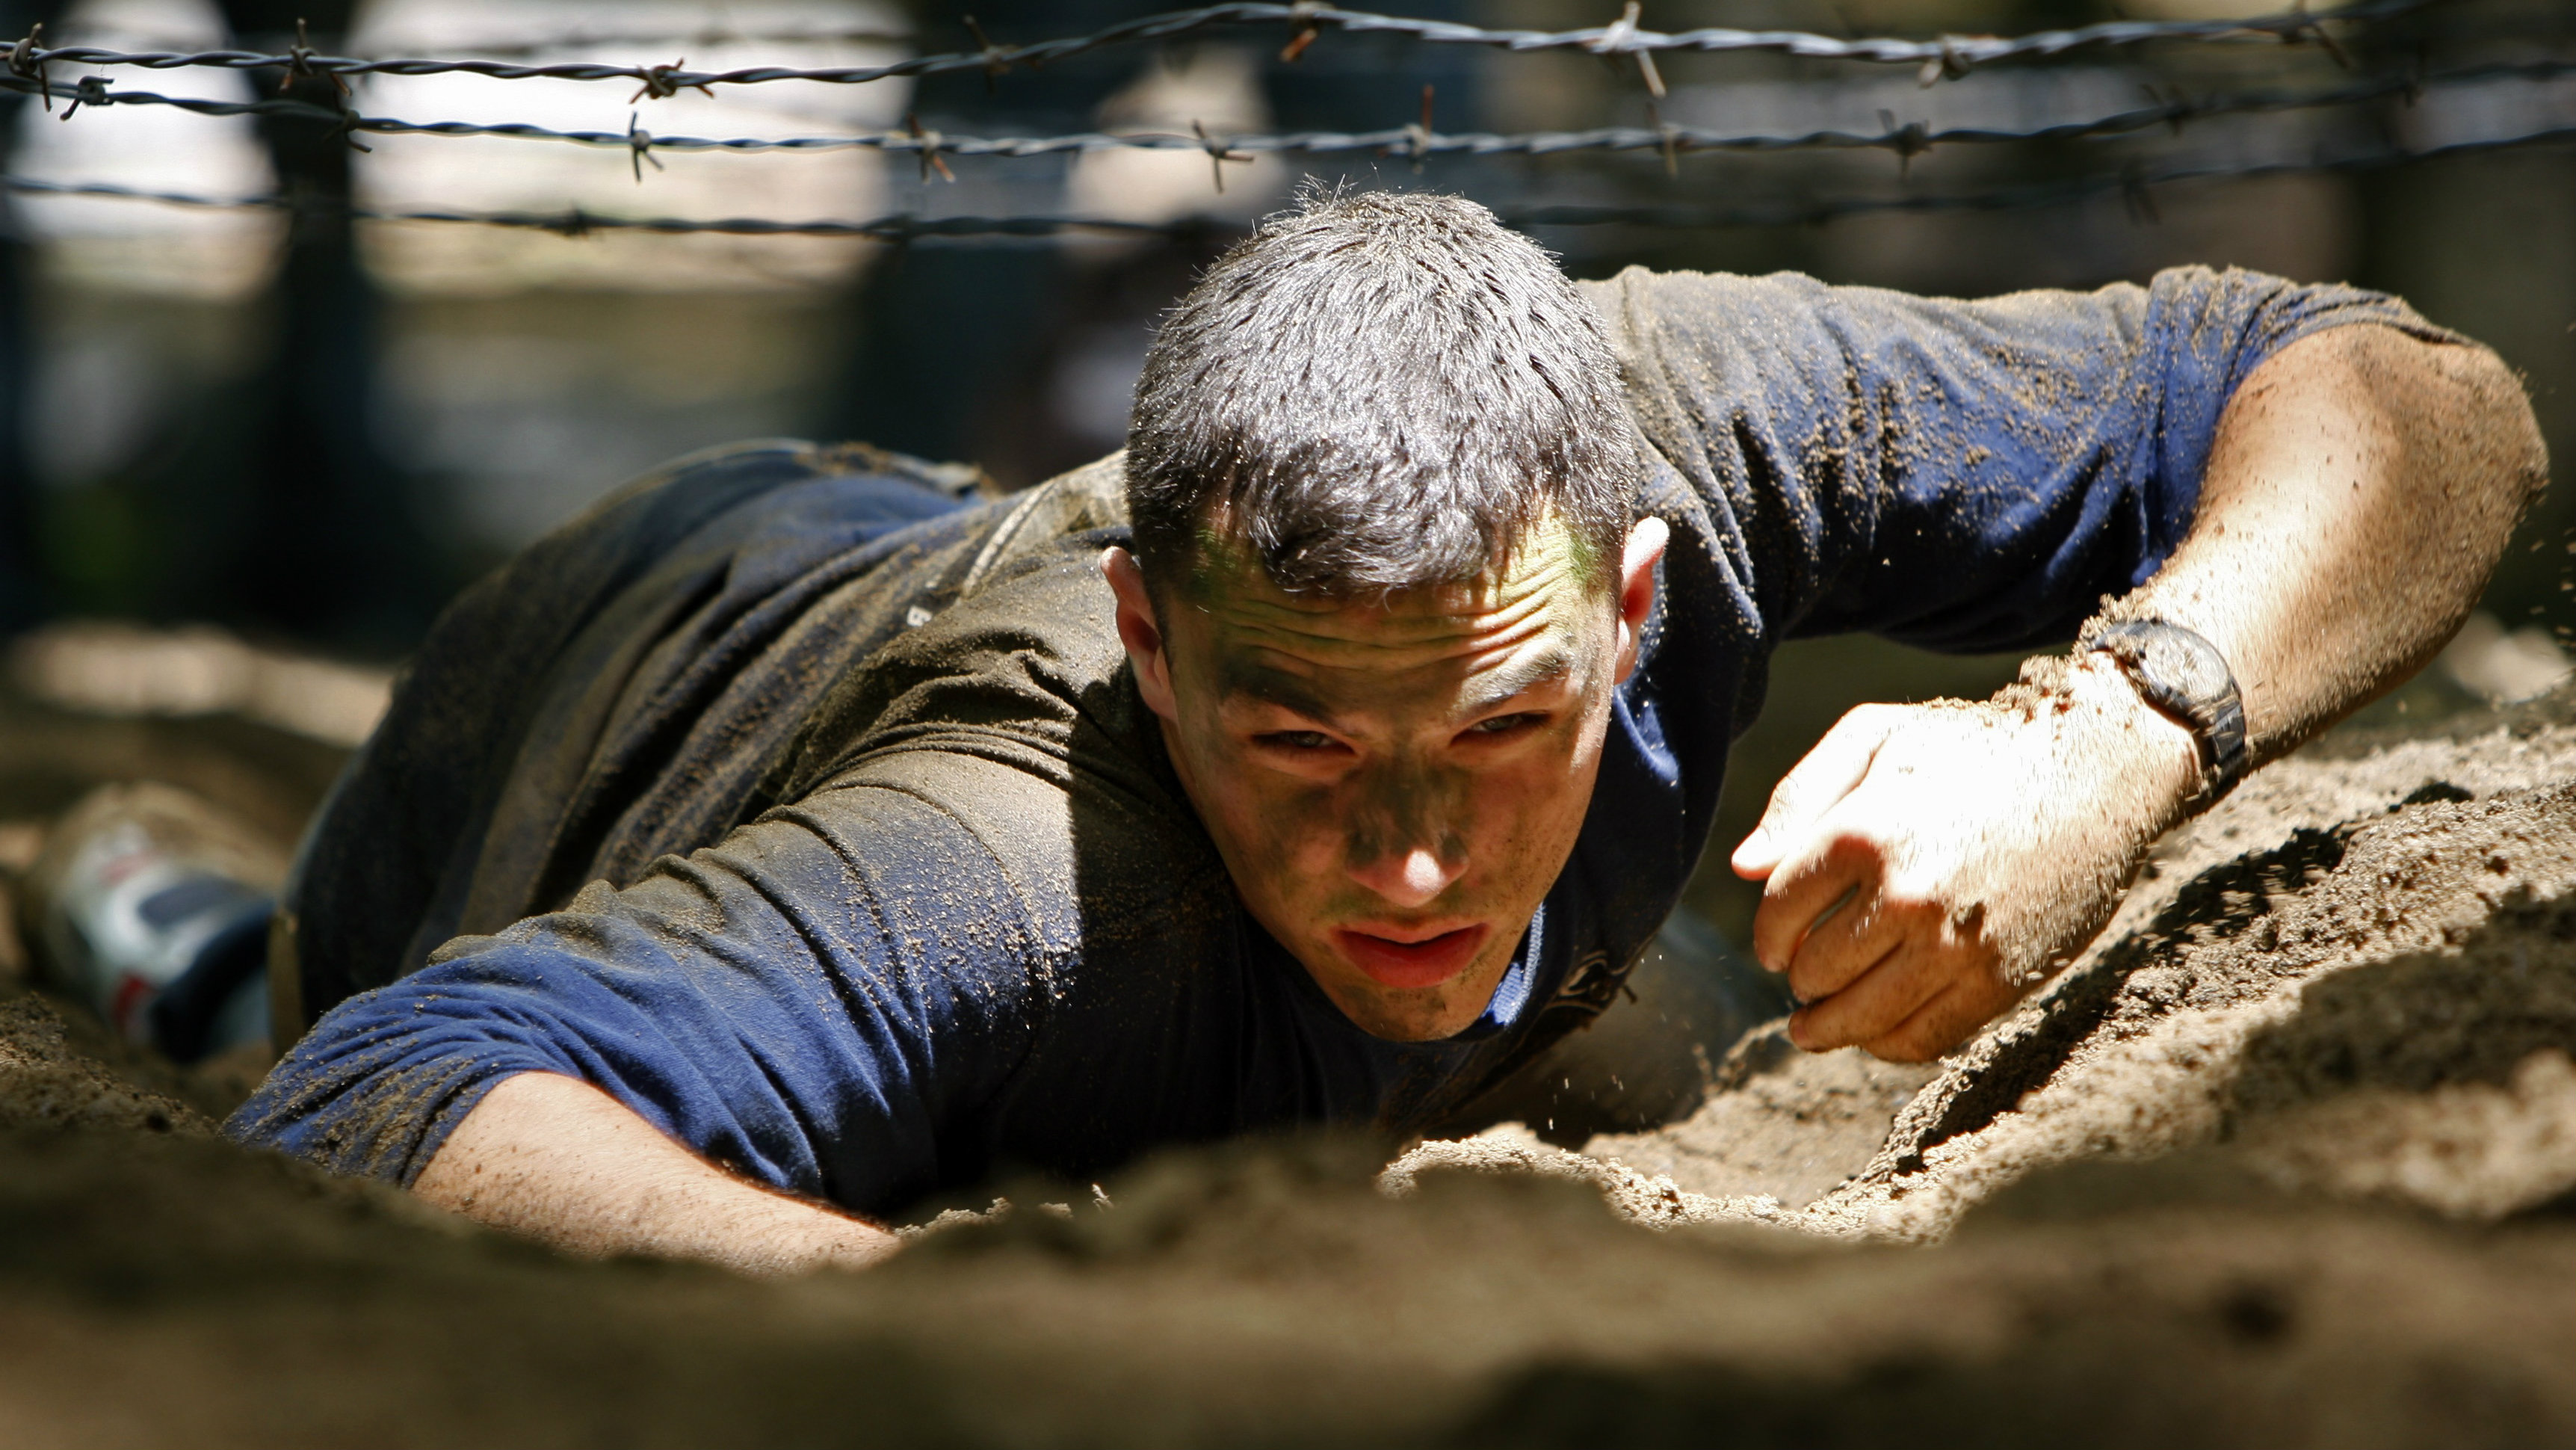 A high school student crawls beneath barbed wire while taking part in training exercises with his squad on an obstacle course at the U.S. Military Academy at West Point, New York June 19, 2008. Each summer, 800 high school kids hoping to become soldiers spend a week at West Point to see what life is like at the prestigious U.S. military academy for future army officers. With the wars in Iraq and Afghanistan straining the U.S. military and public support low for the Iraq war, recruiting future officers might seem a tough sell. But officials say applications to the summer program are at a record high. Picture taken June 19, 2008. To match feature USA-MILITARY/WESTPOINT REUTERS/Mike Segar (UNITED STATES)